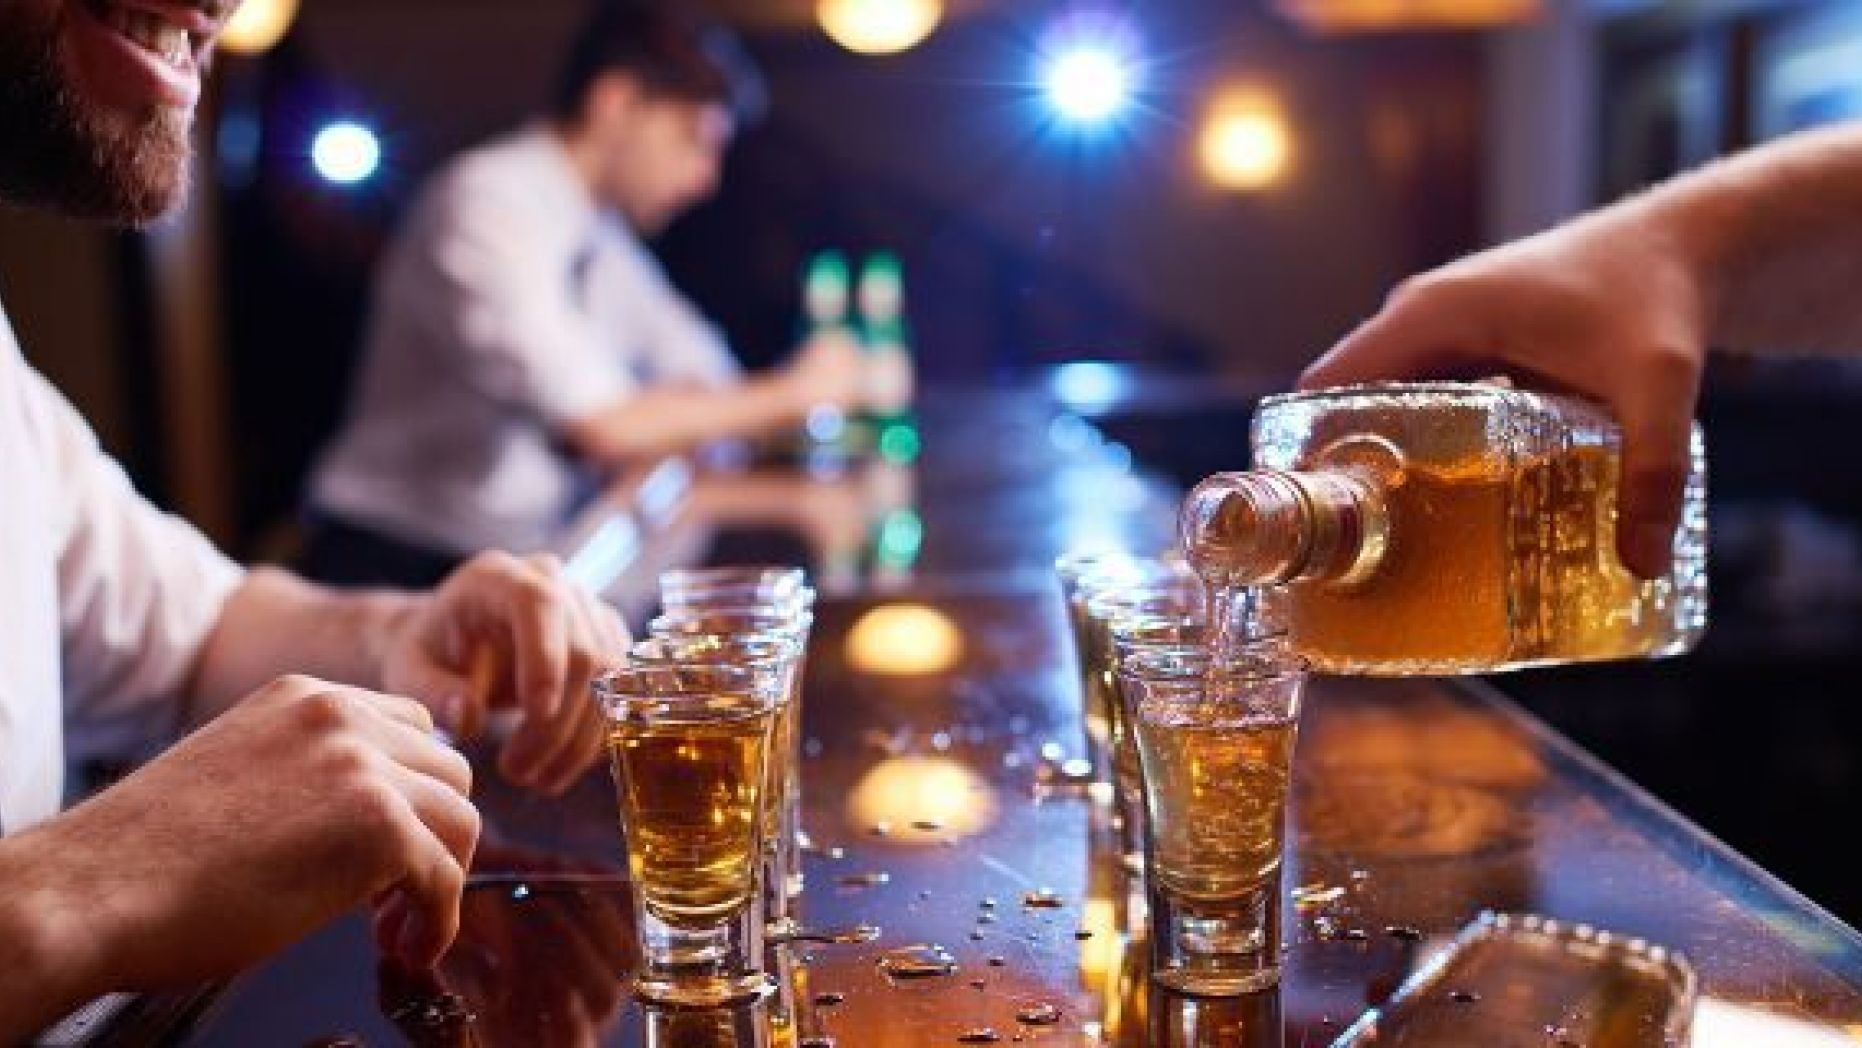 alcohol may be ruining your relationship